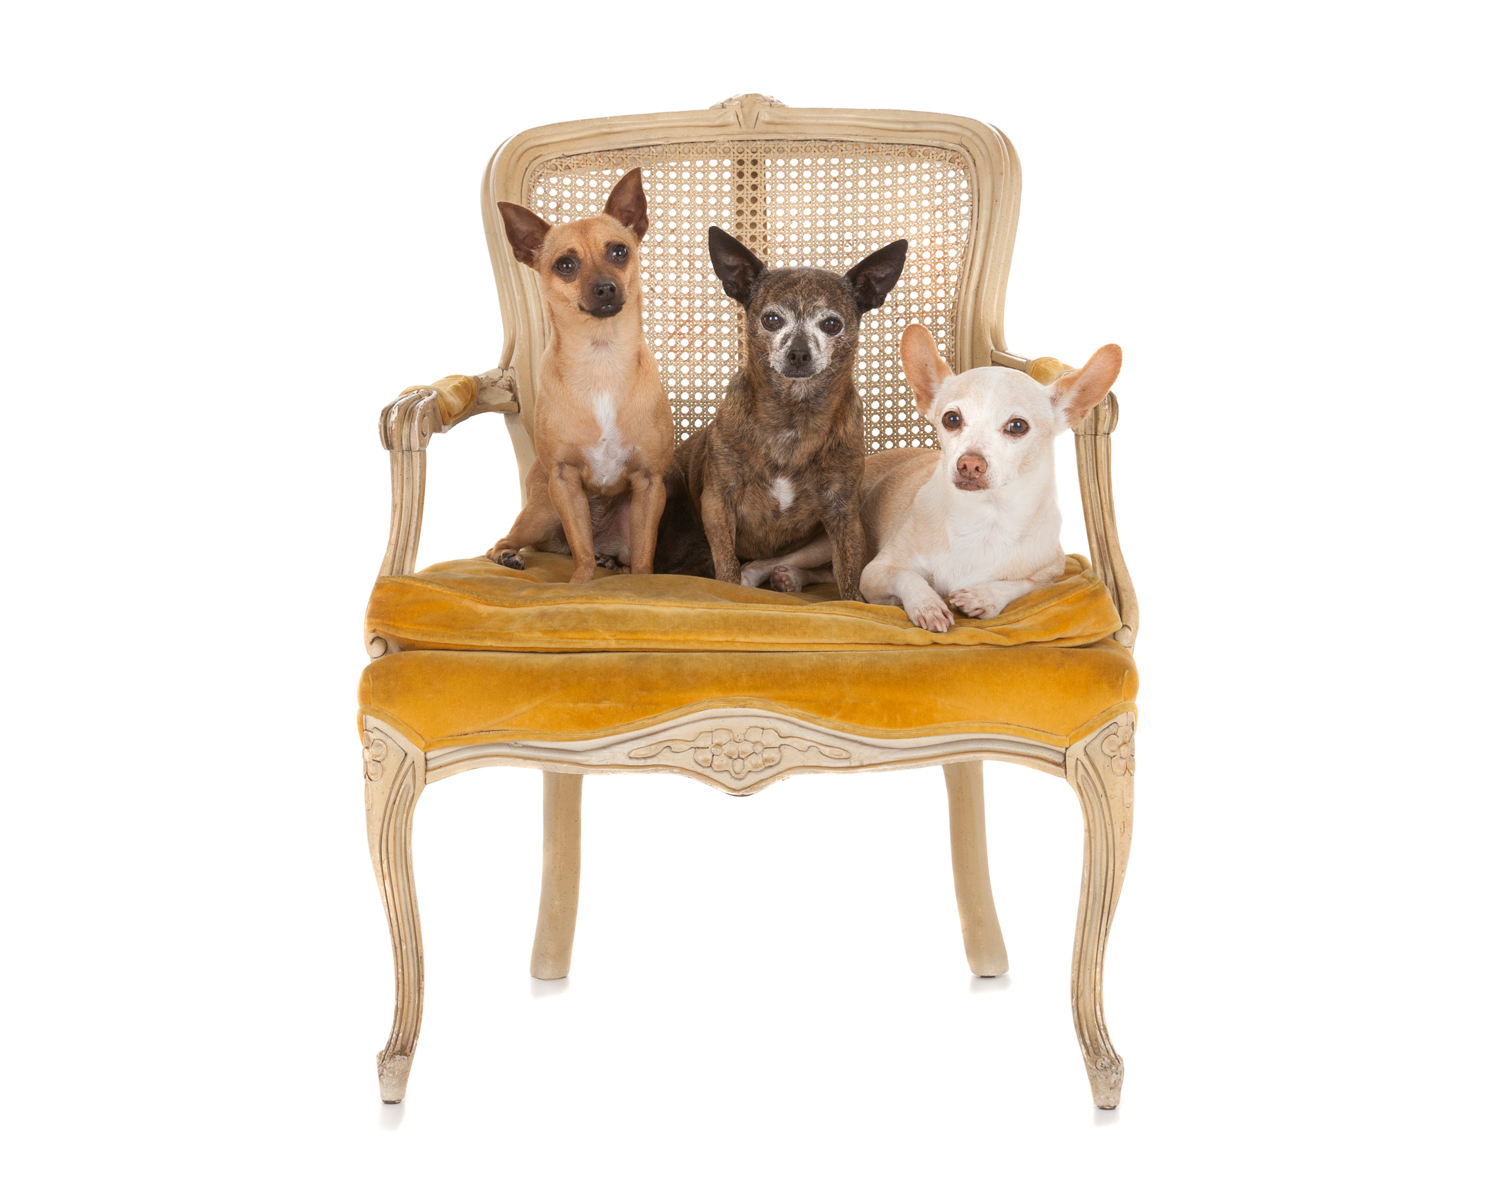 Chihuahuas in yellow chair2.jpg